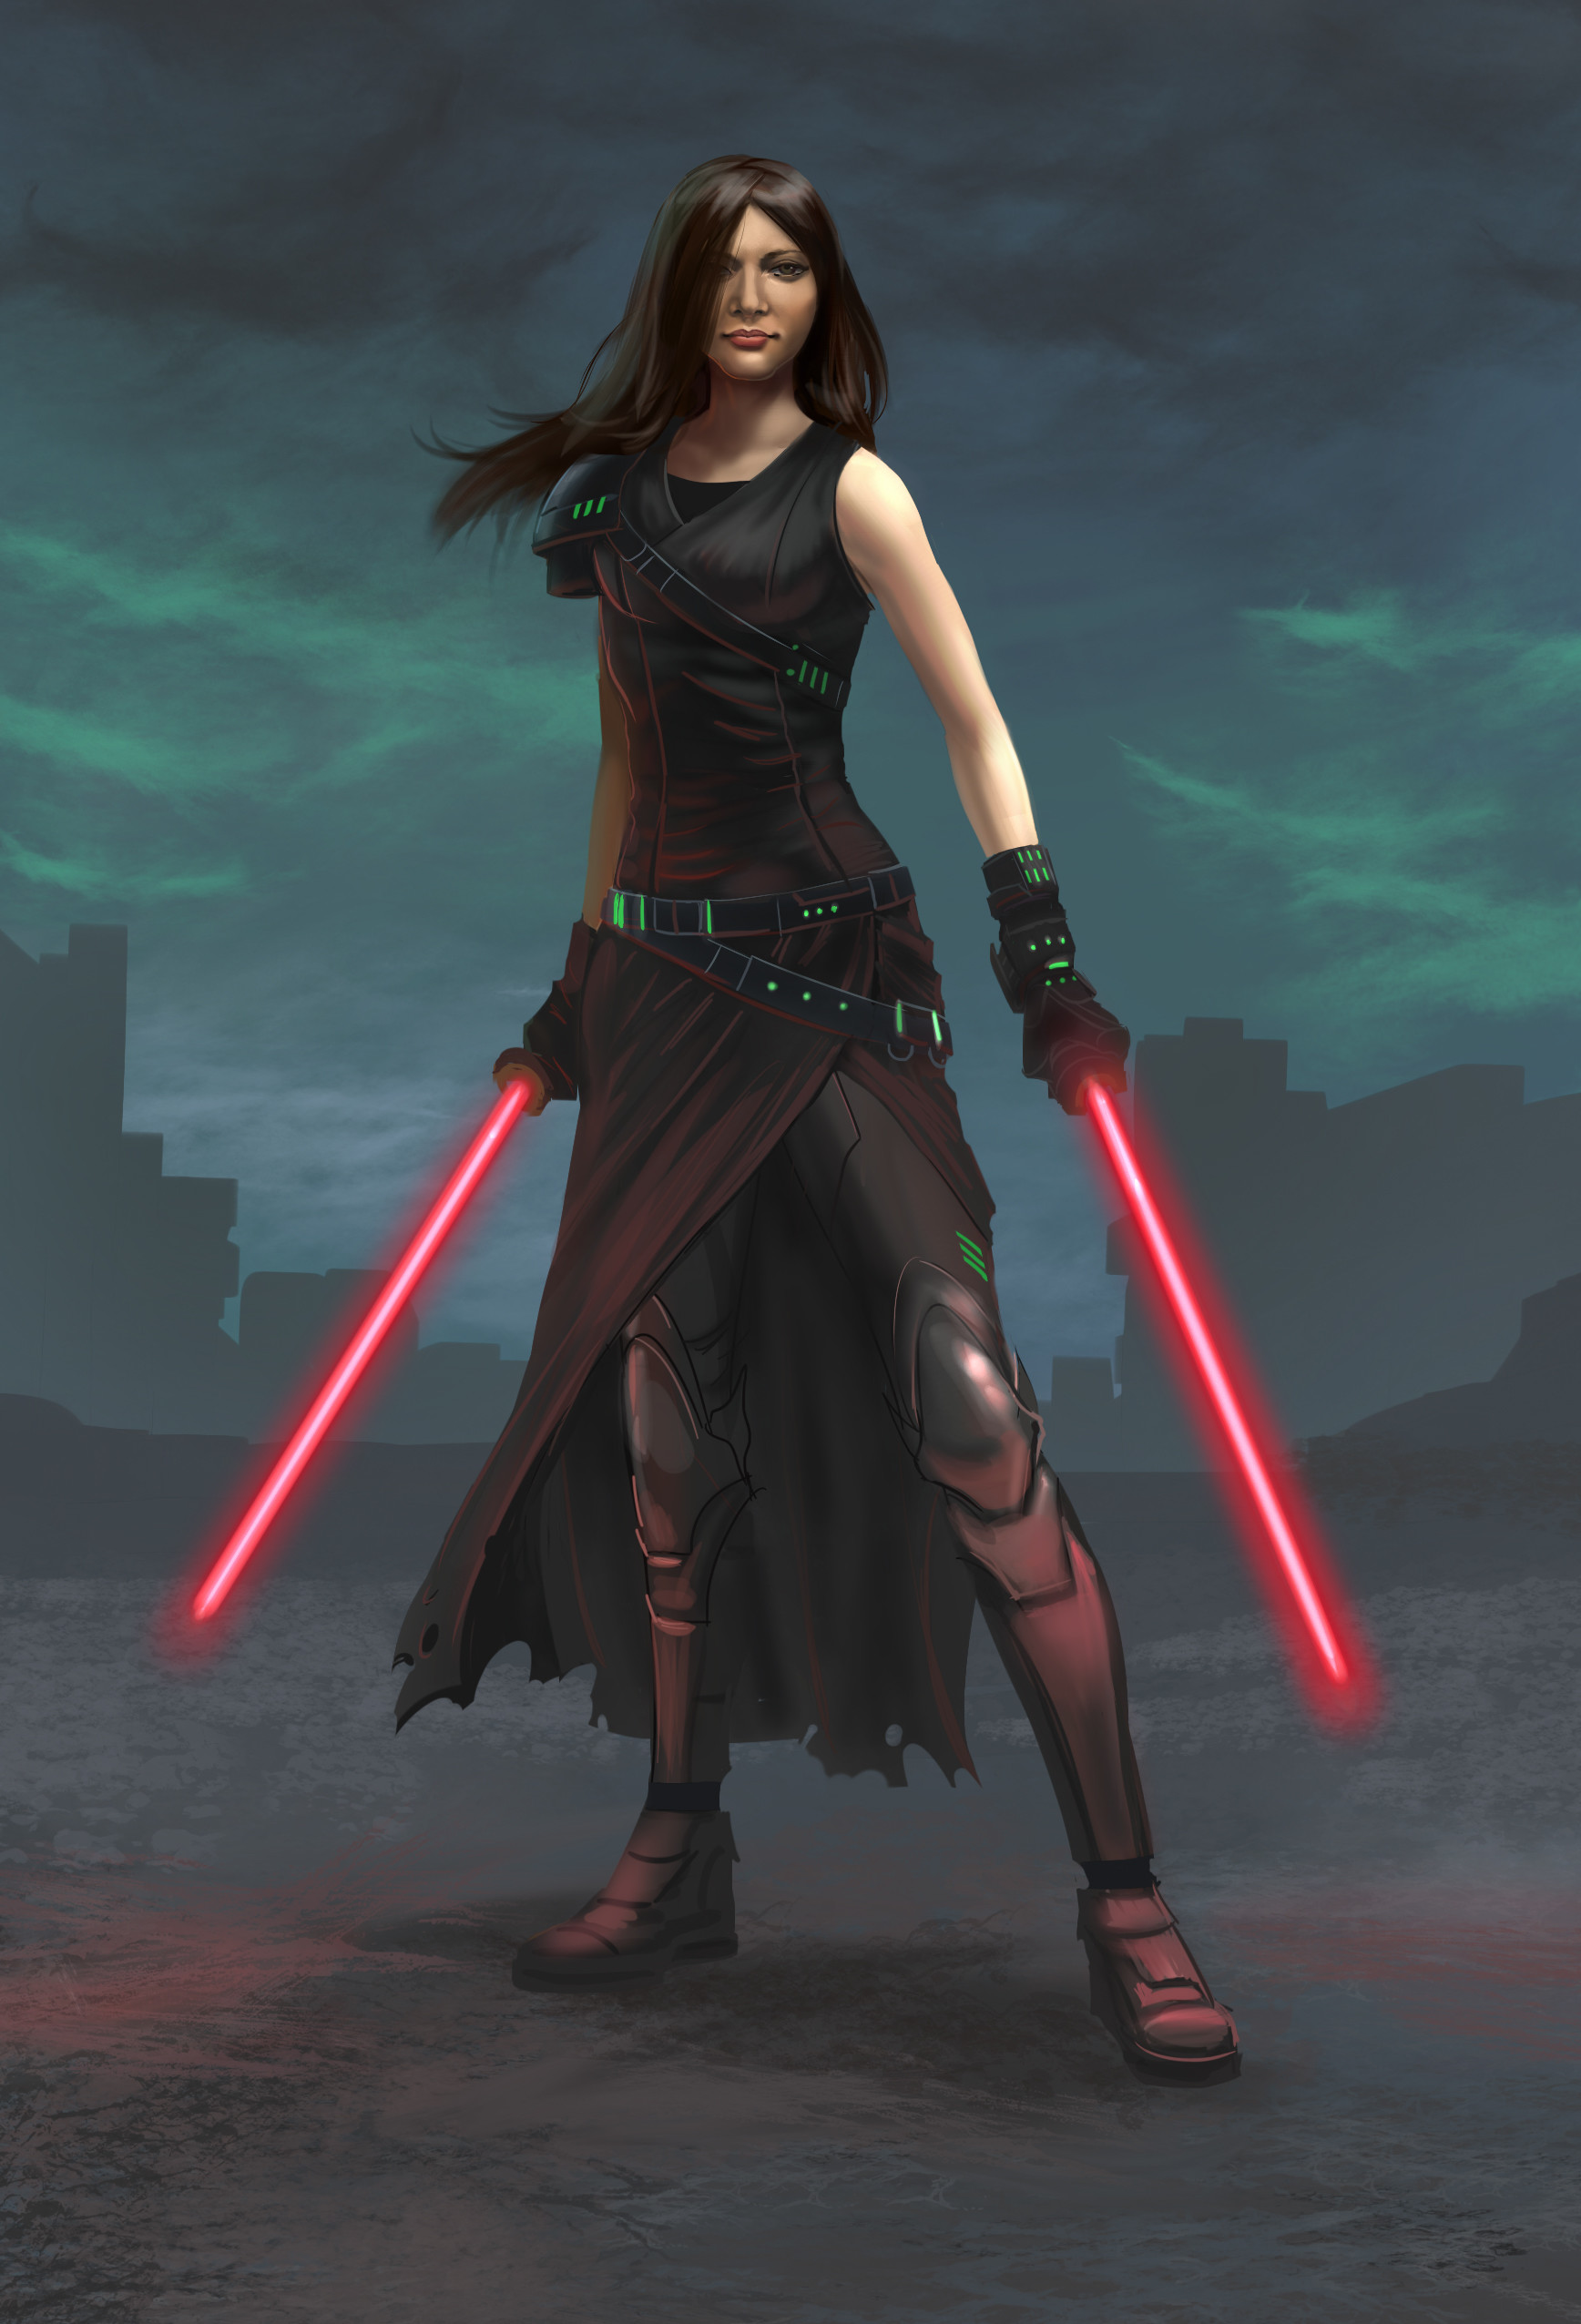 jason-stewart-sith-lady-rev.jpg?15260621